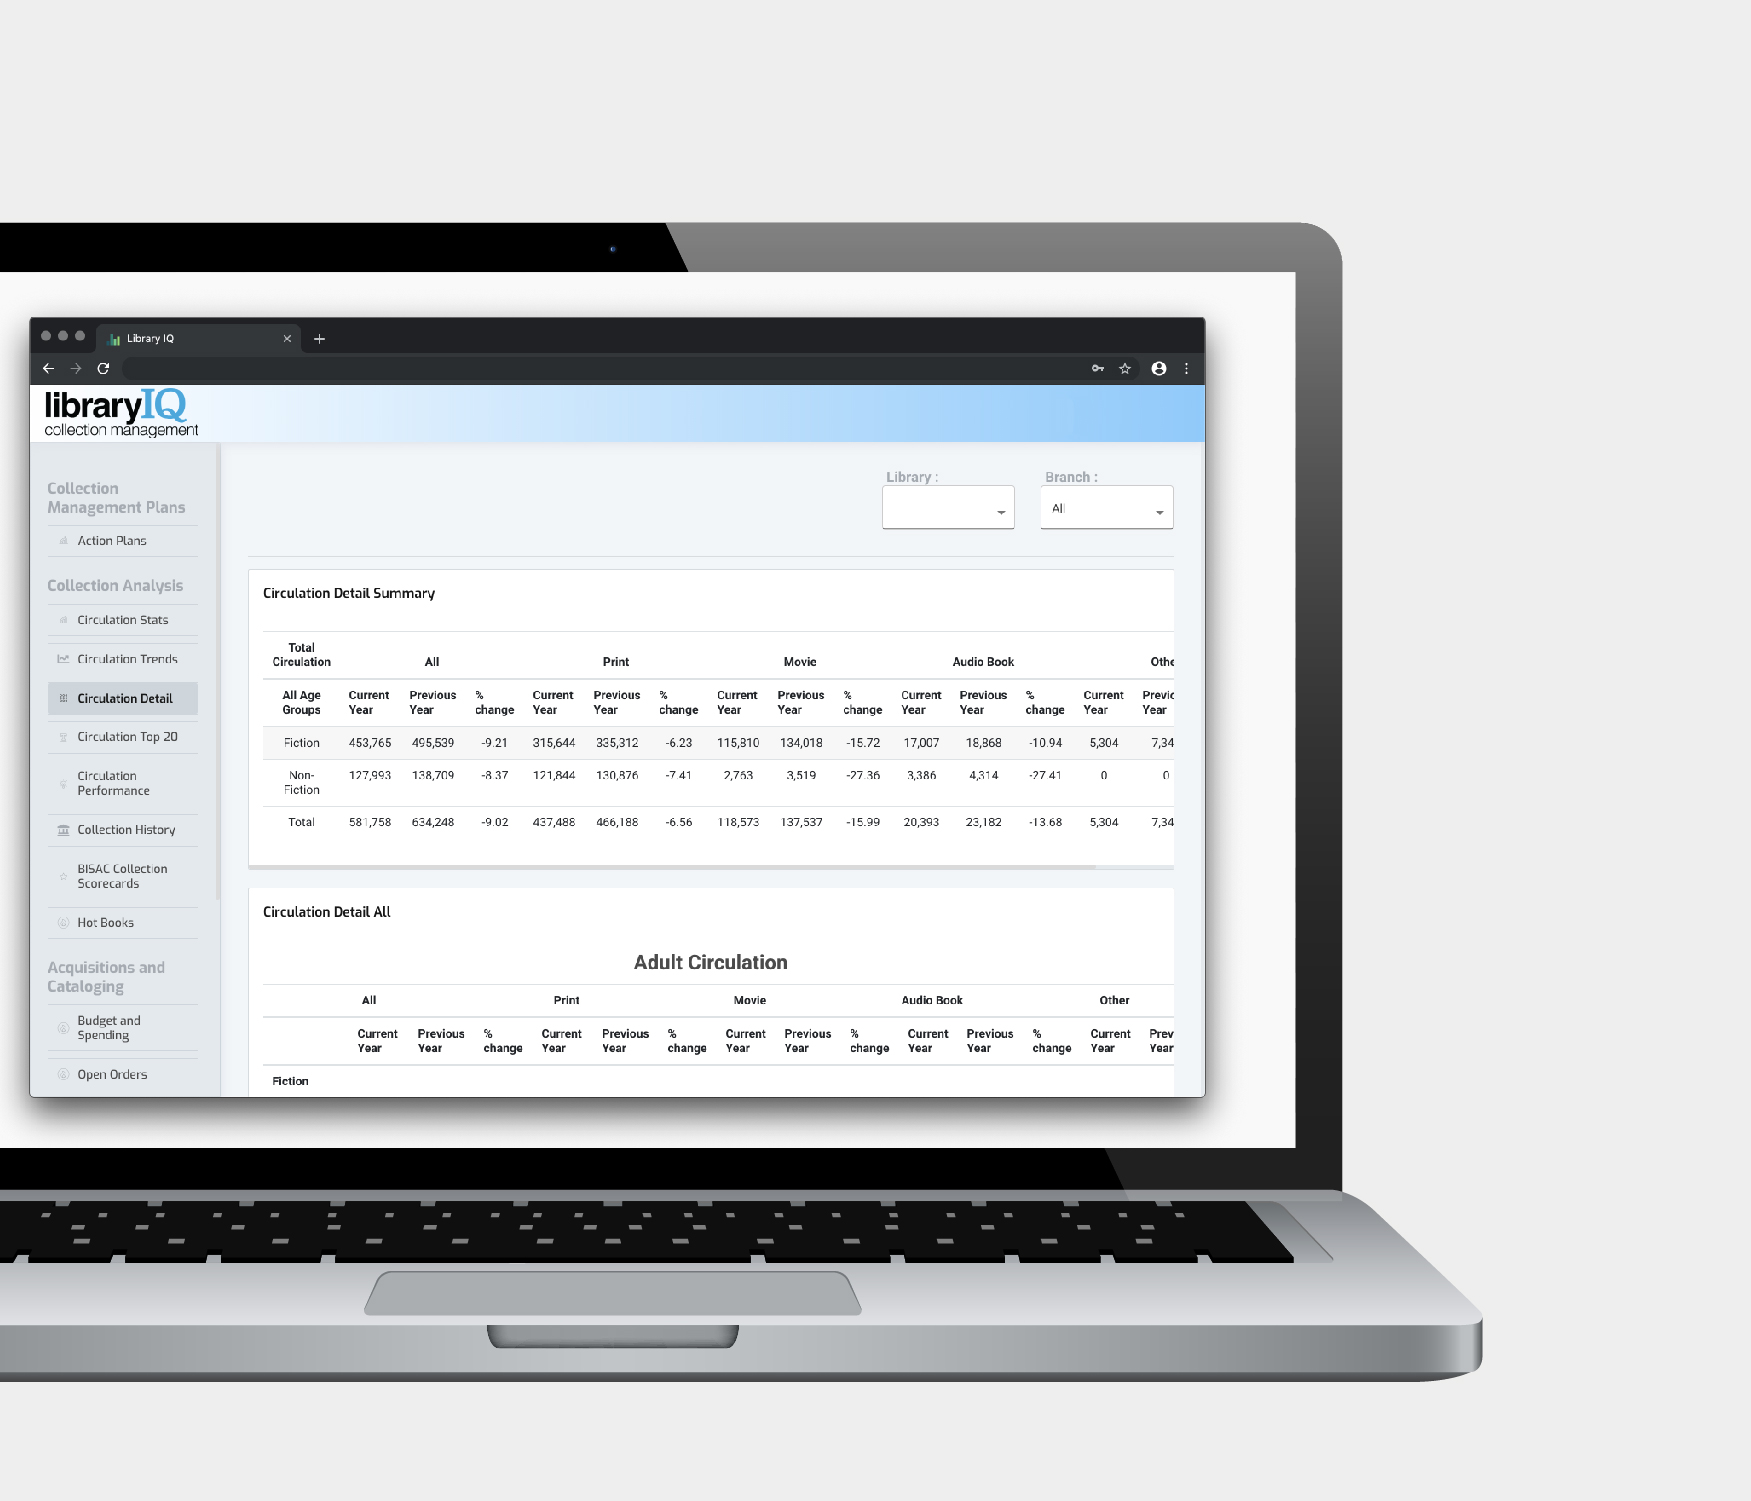 Collaborative Collection Management - Streamline ordering, processing, inventory and cataloging. Eliminate time-consuming back office work and free staff to focus on patron service.